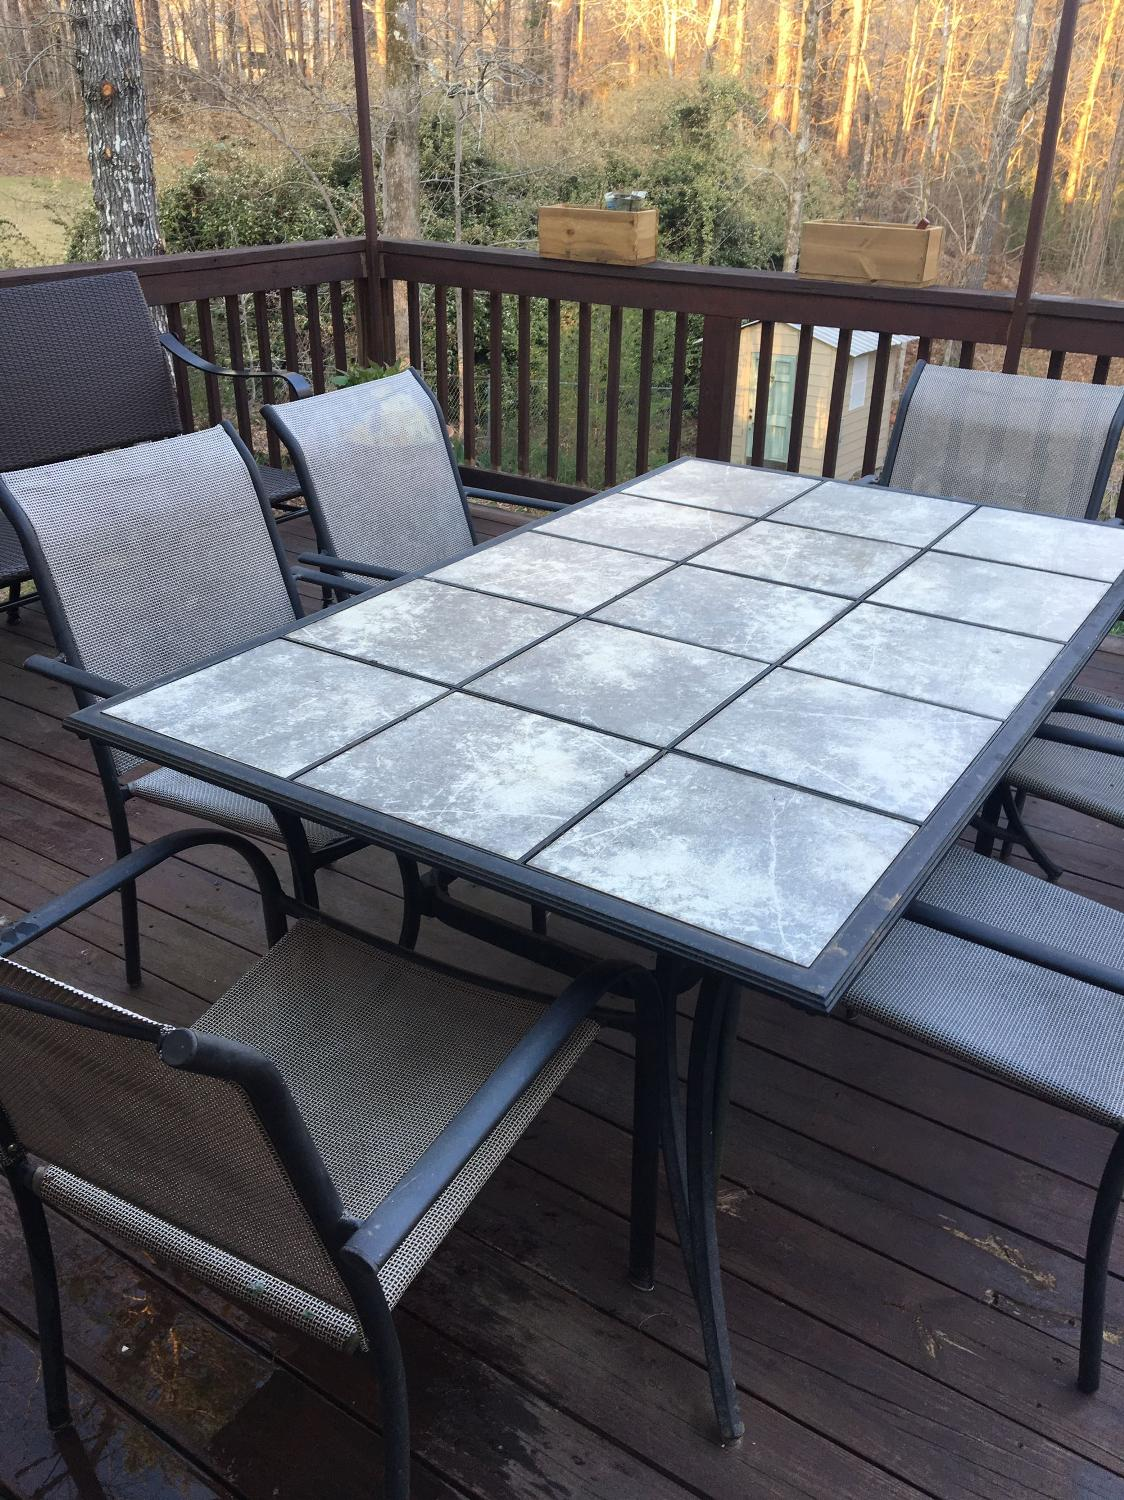 Find More Outdoor Table And 6 Chairs For Sale At Up To 90 Off Mountain Brook Al